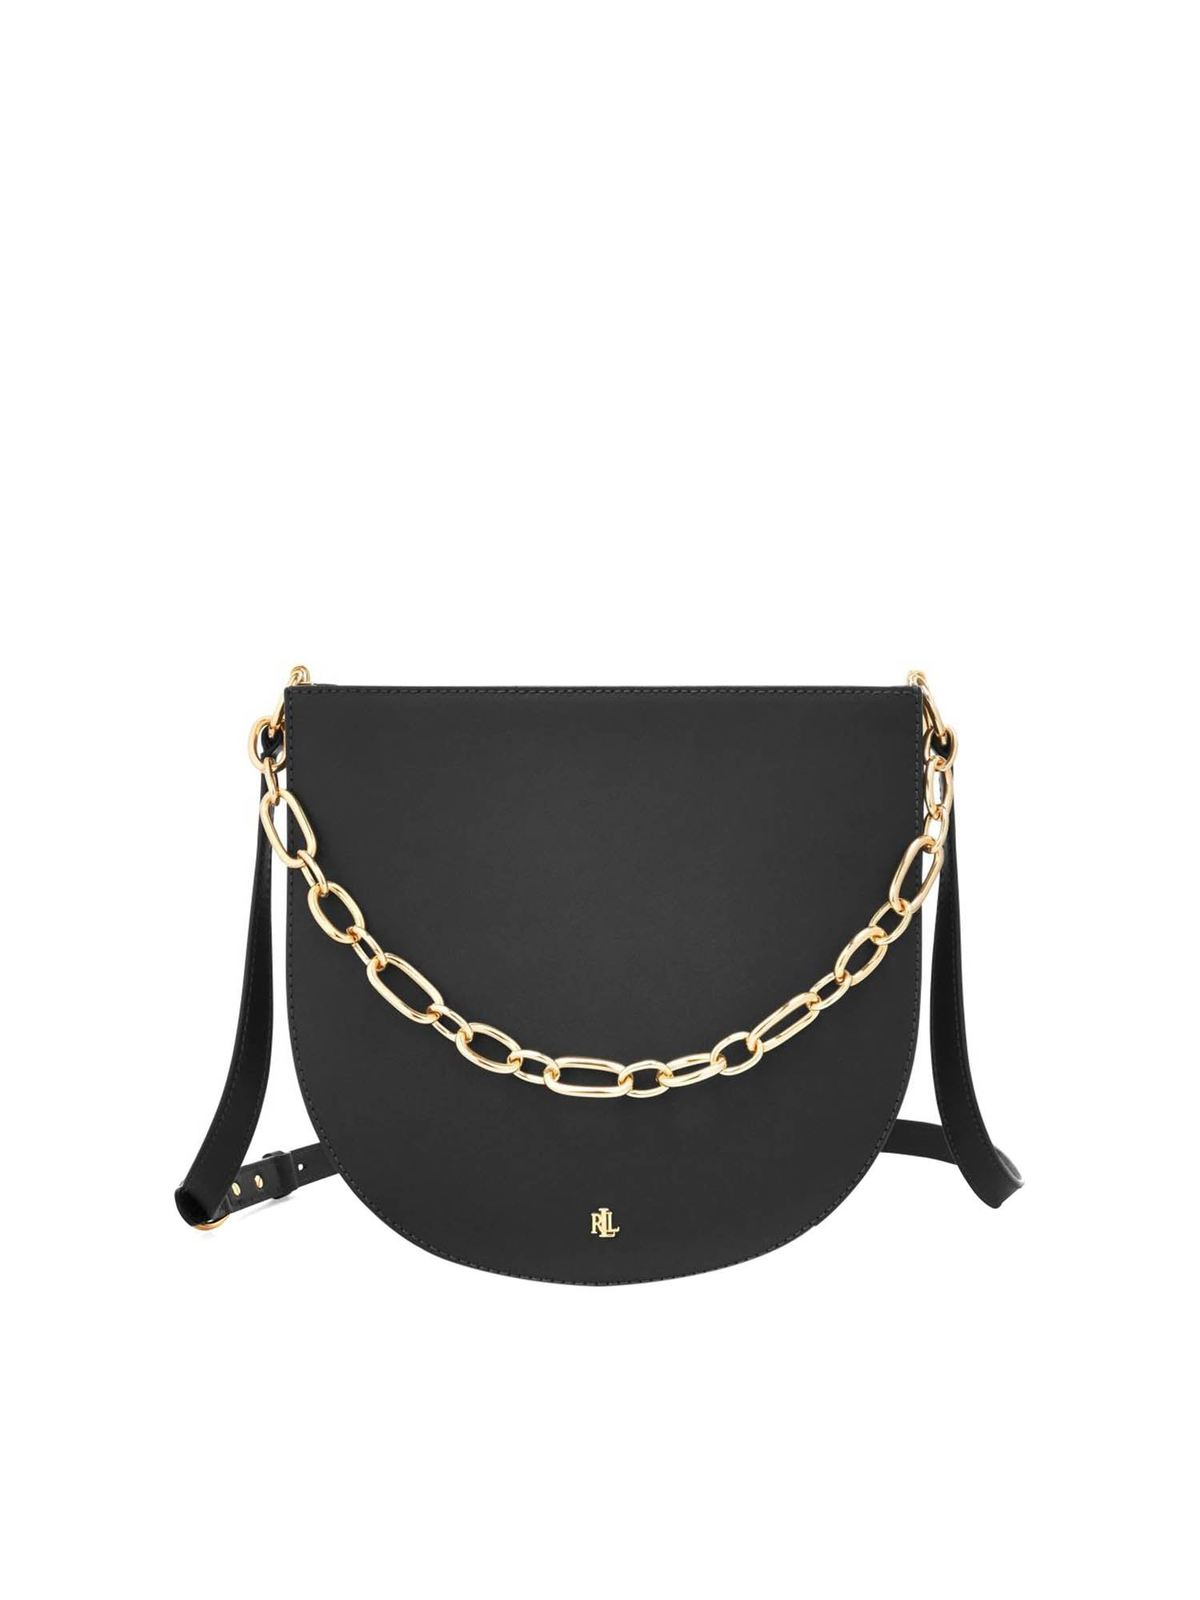 Lauren Ralph Lauren SAWYER SHOULDER BAG IN BLACK